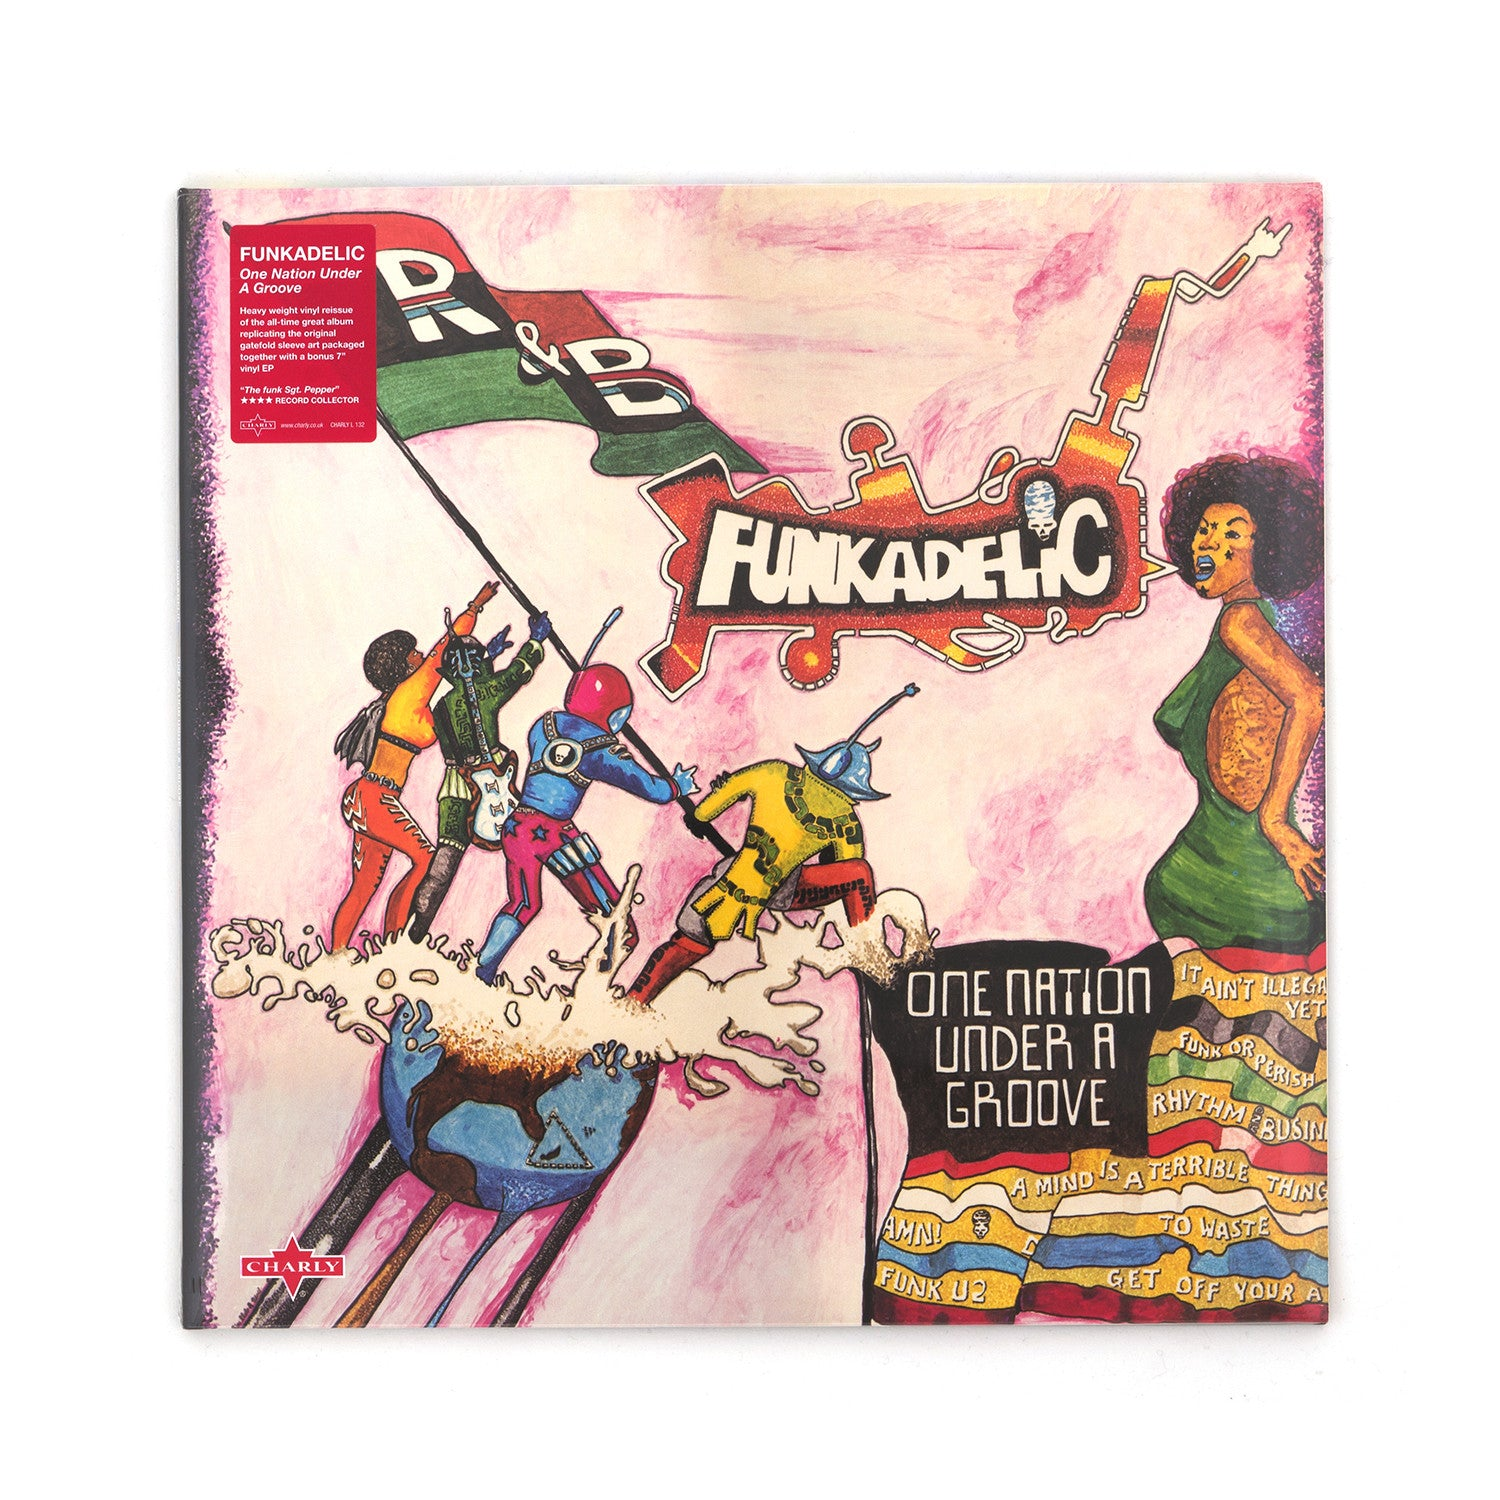 Funkadelic - One Nation Under A Groove LP+7'' - Concrete